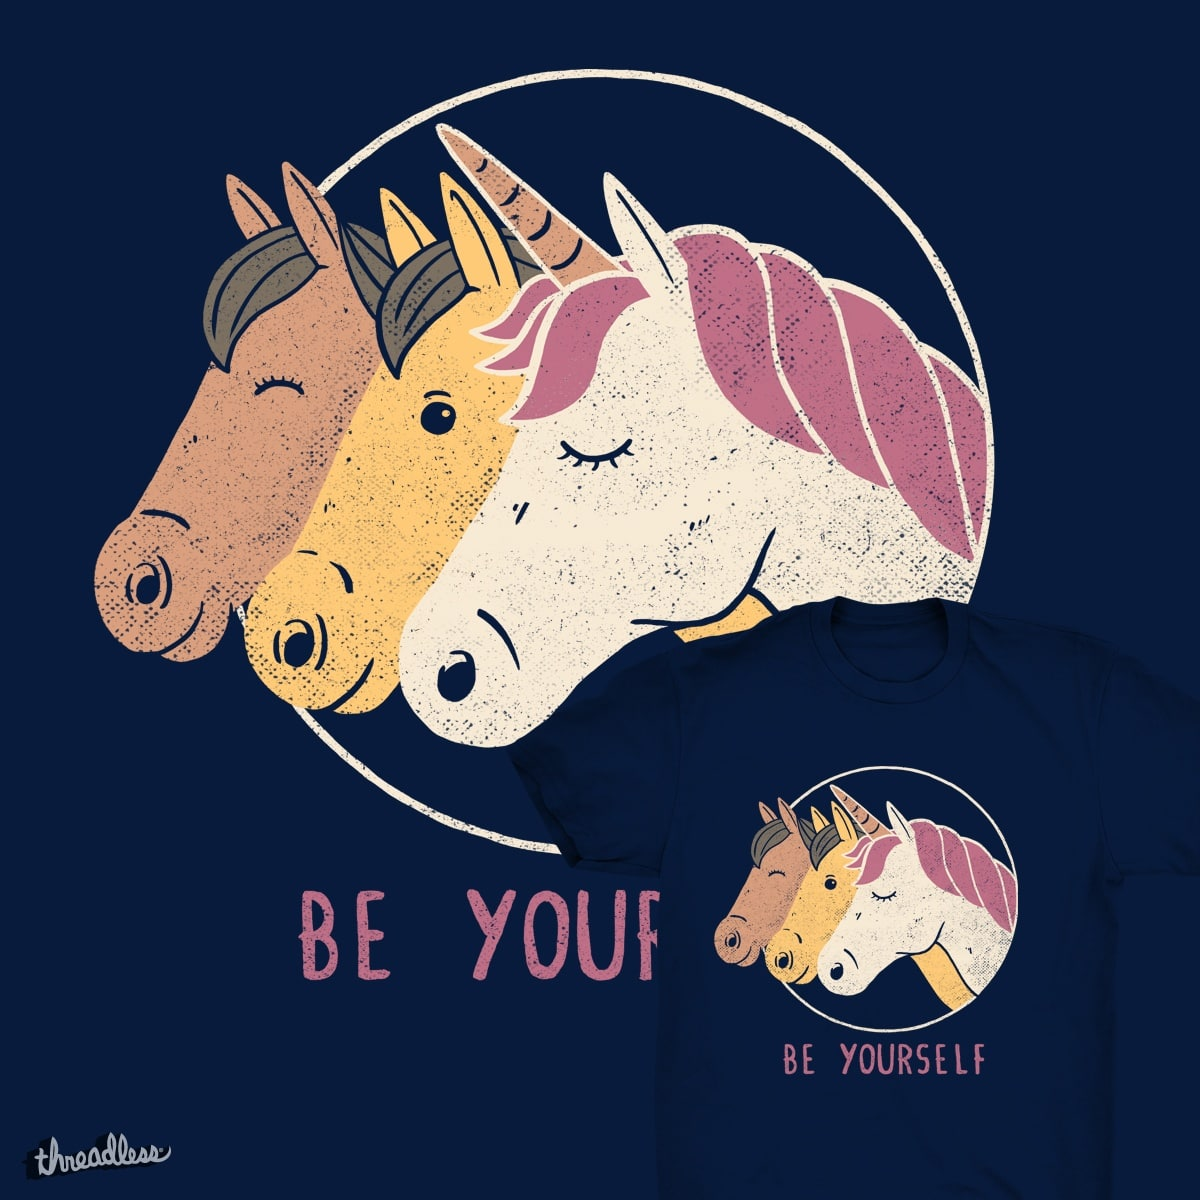 Be Yourself by tobefonseca on Threadless